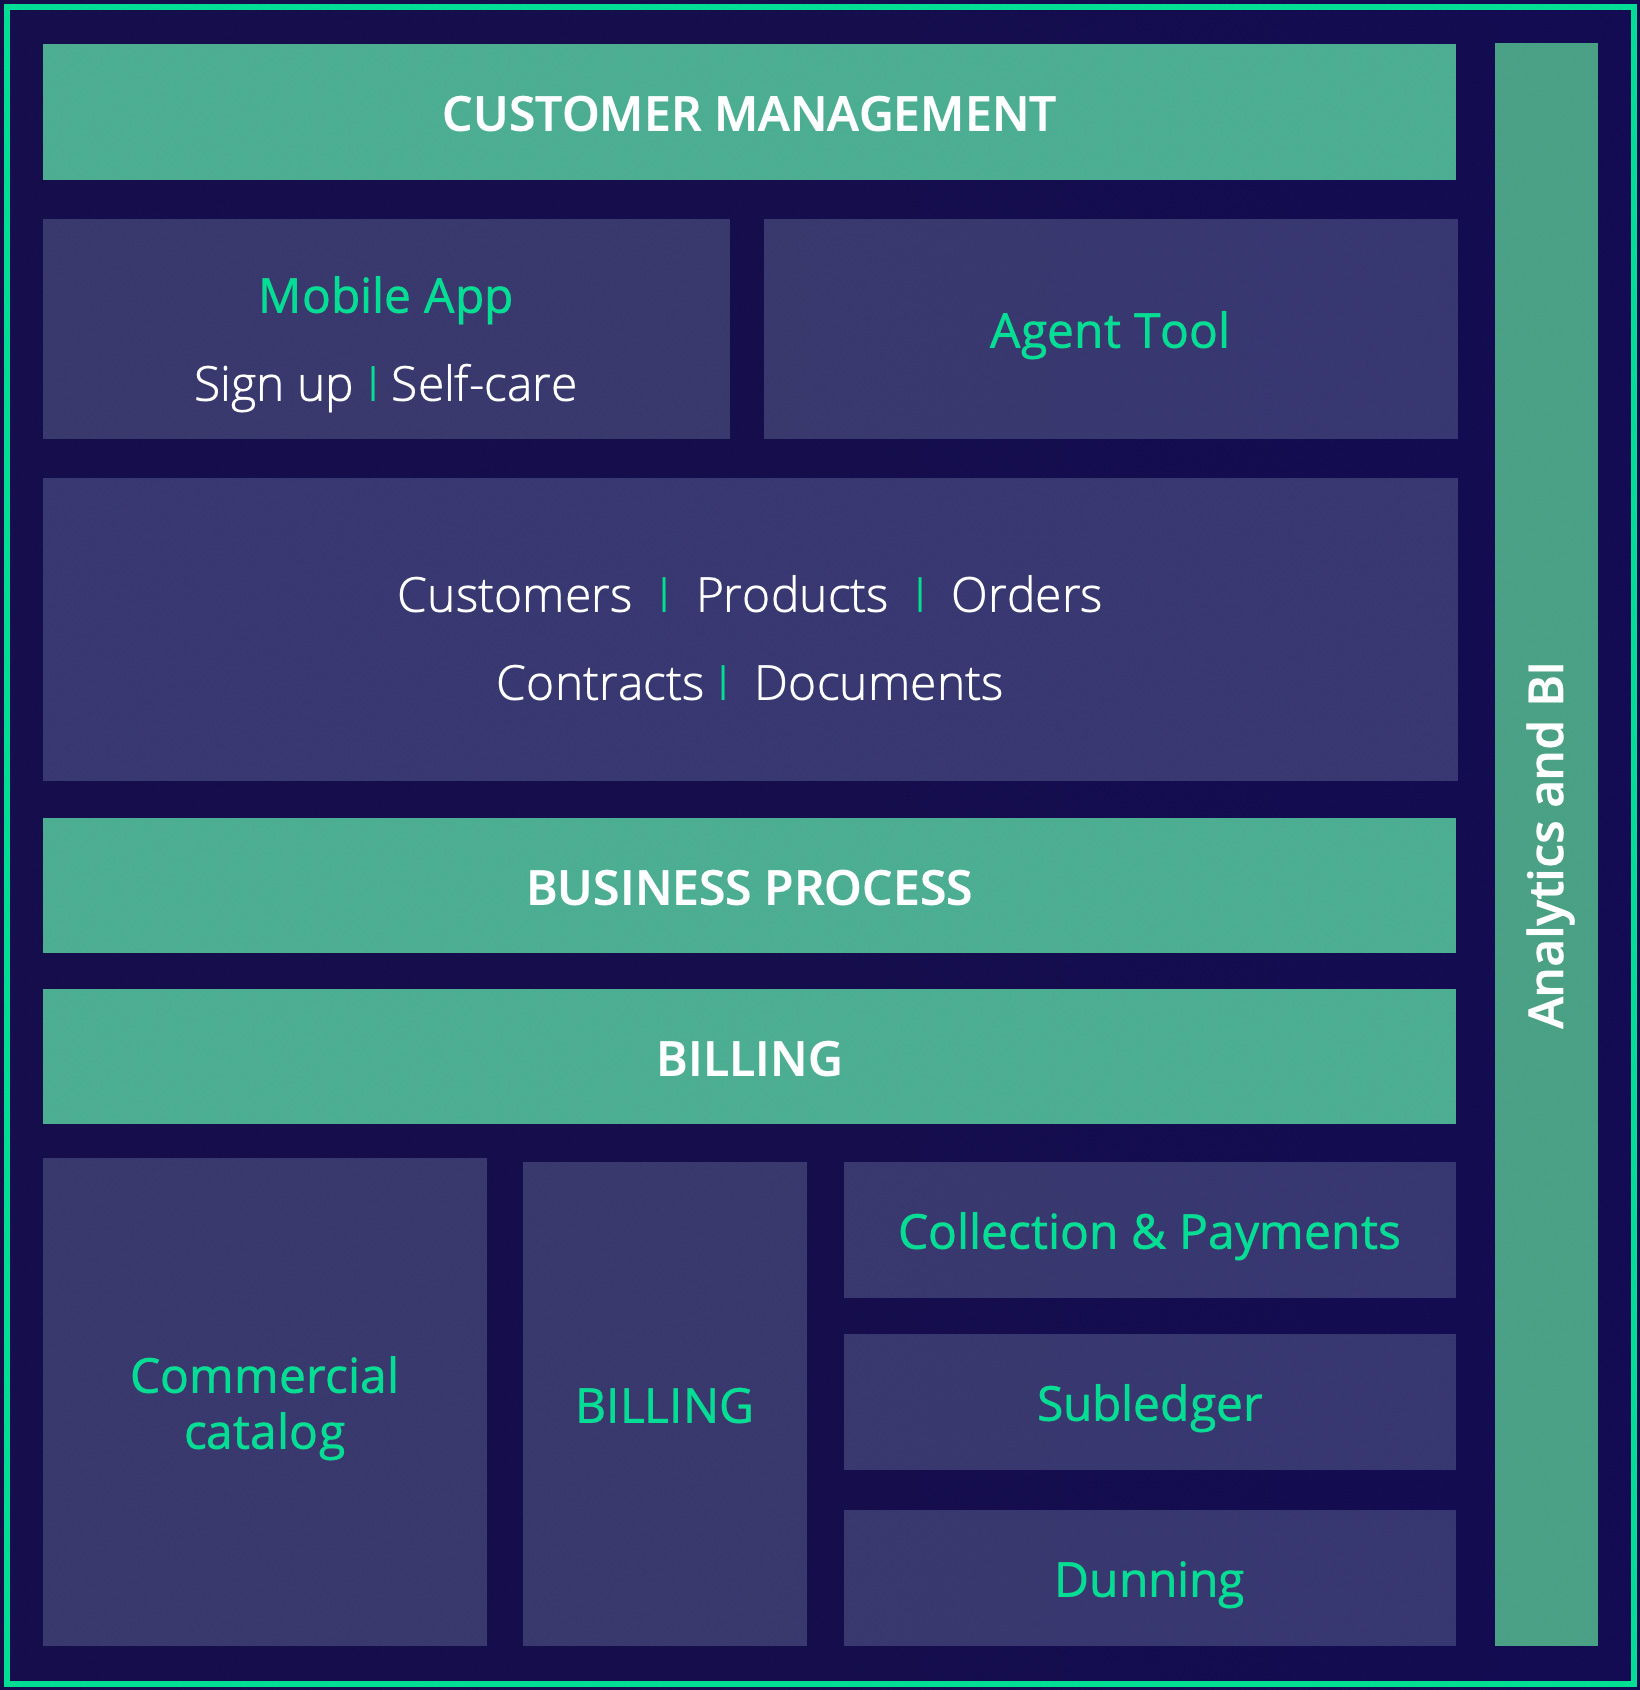 triPica's key differentiators: business processes, analytics, BI and more